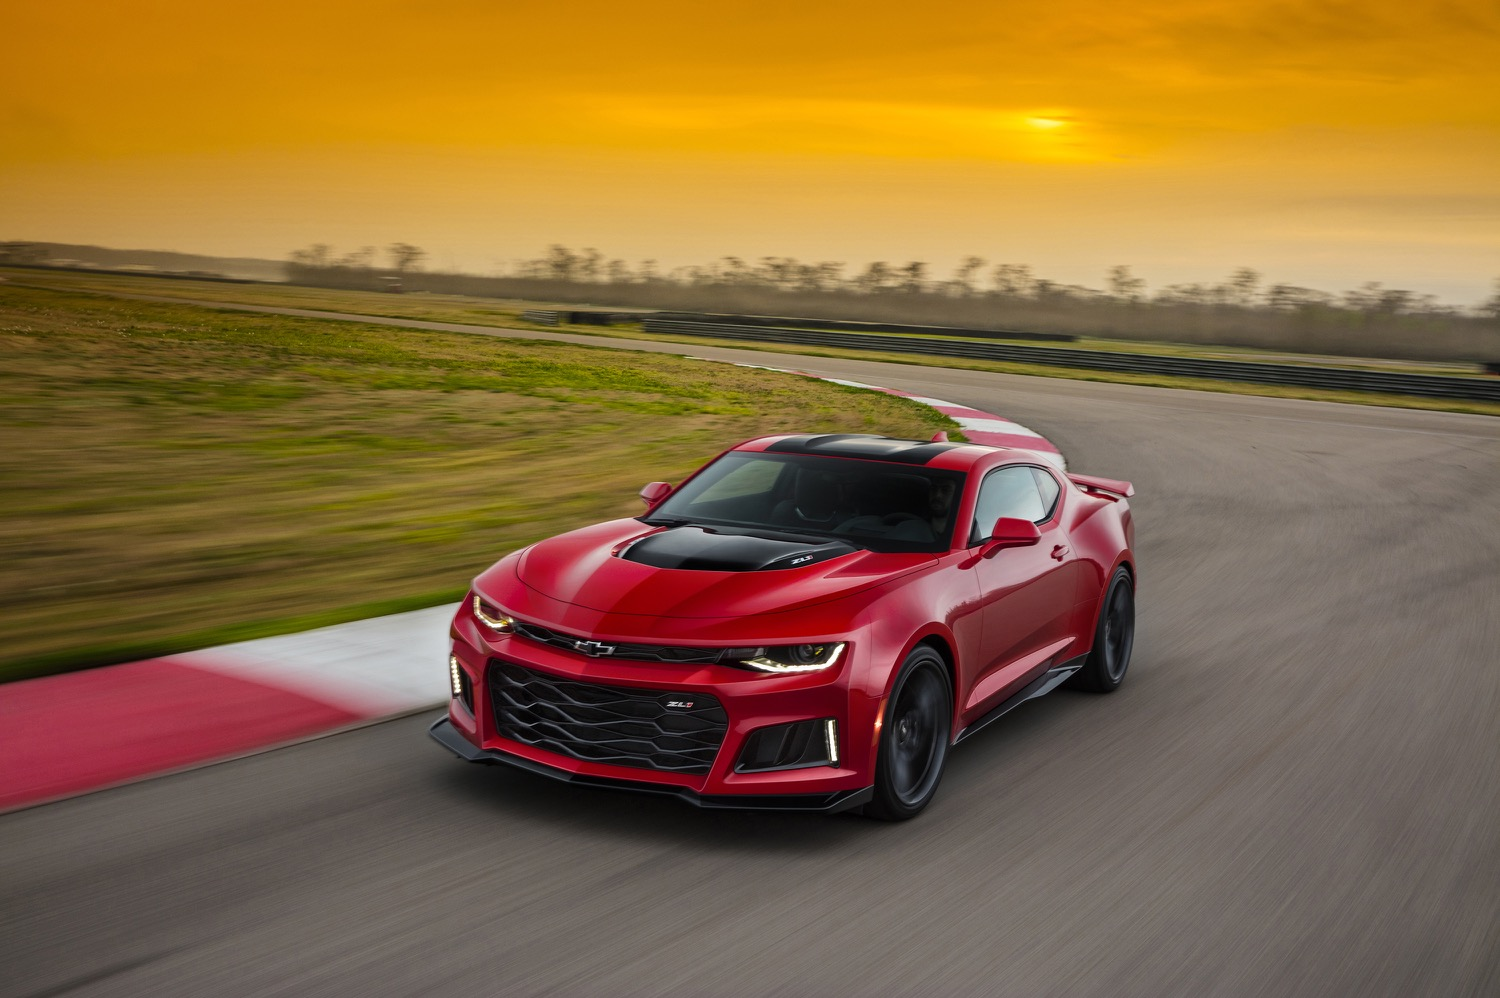 2017 Chevrolet Camaro SS photo - 1